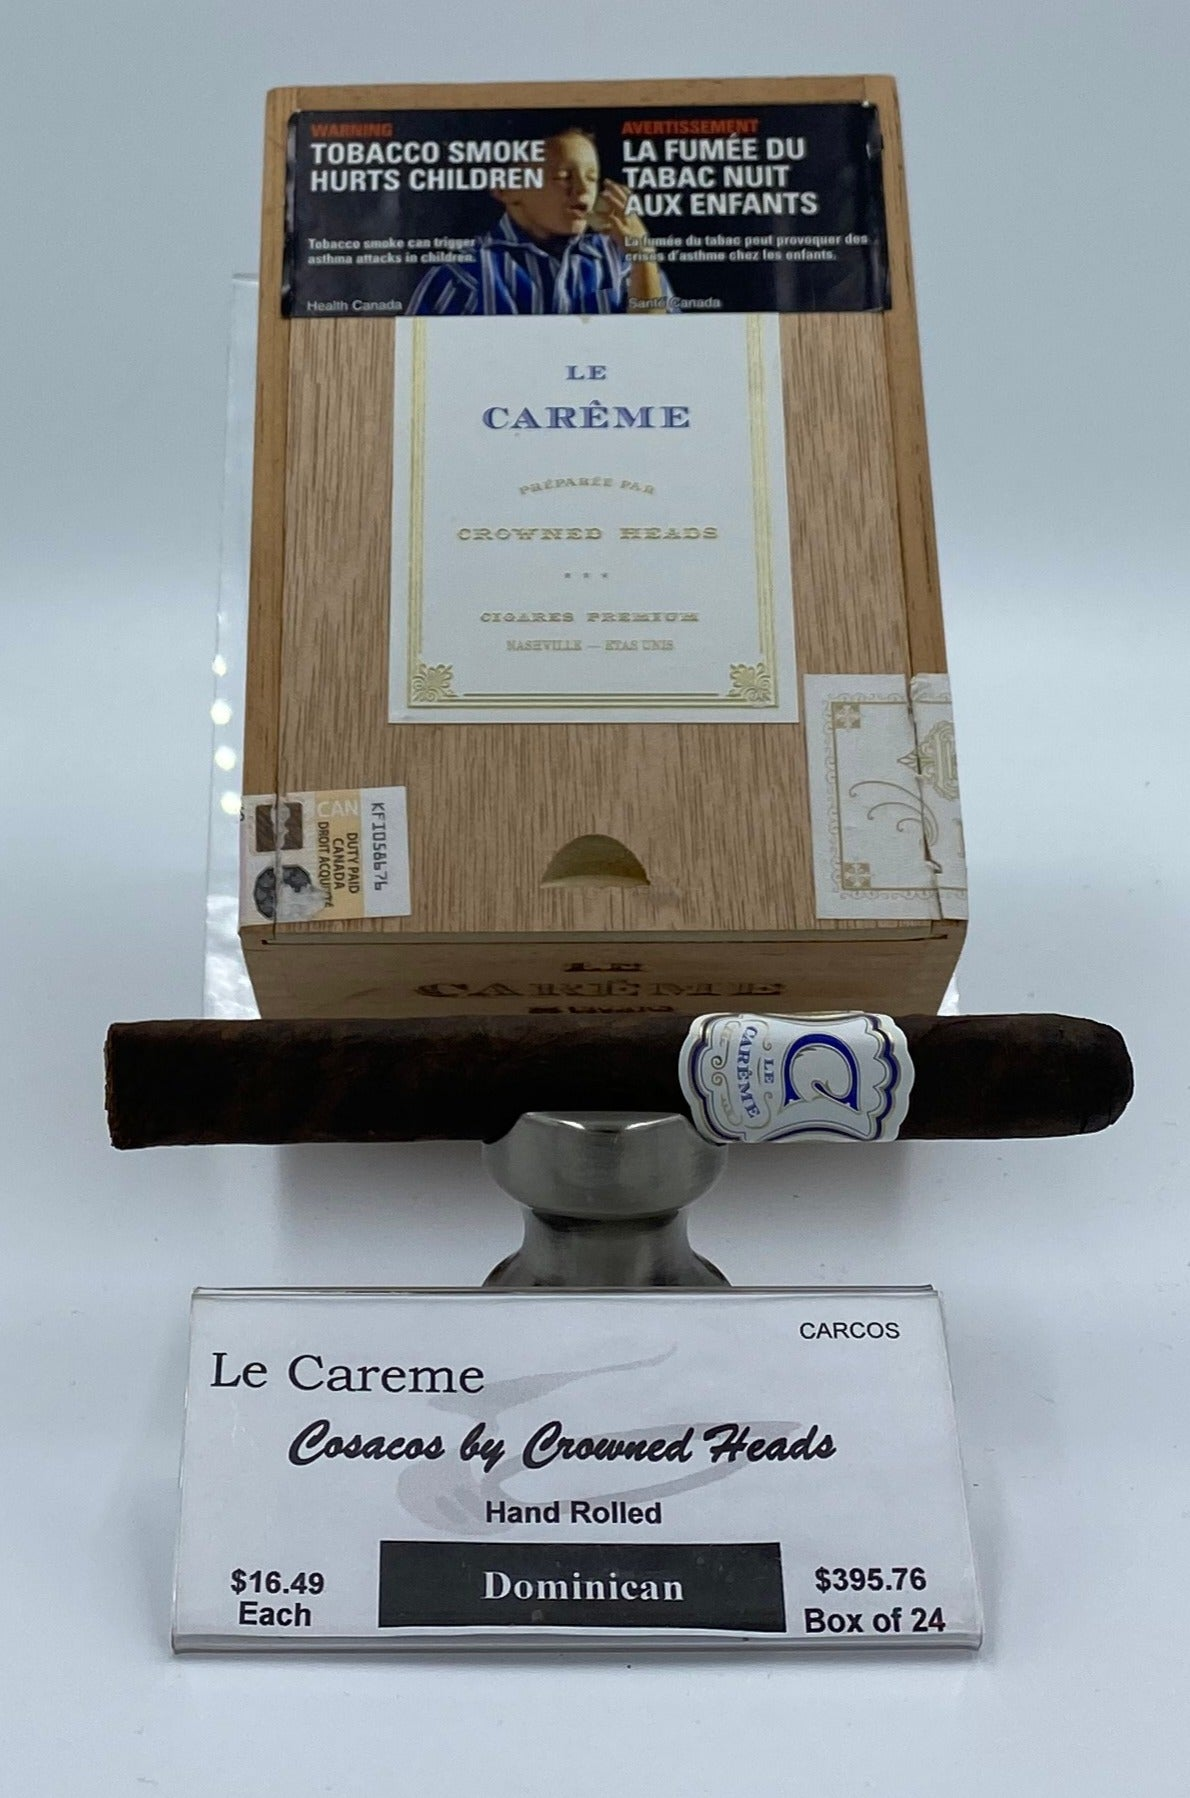 Le Careme Cosacos by Crowned Heads